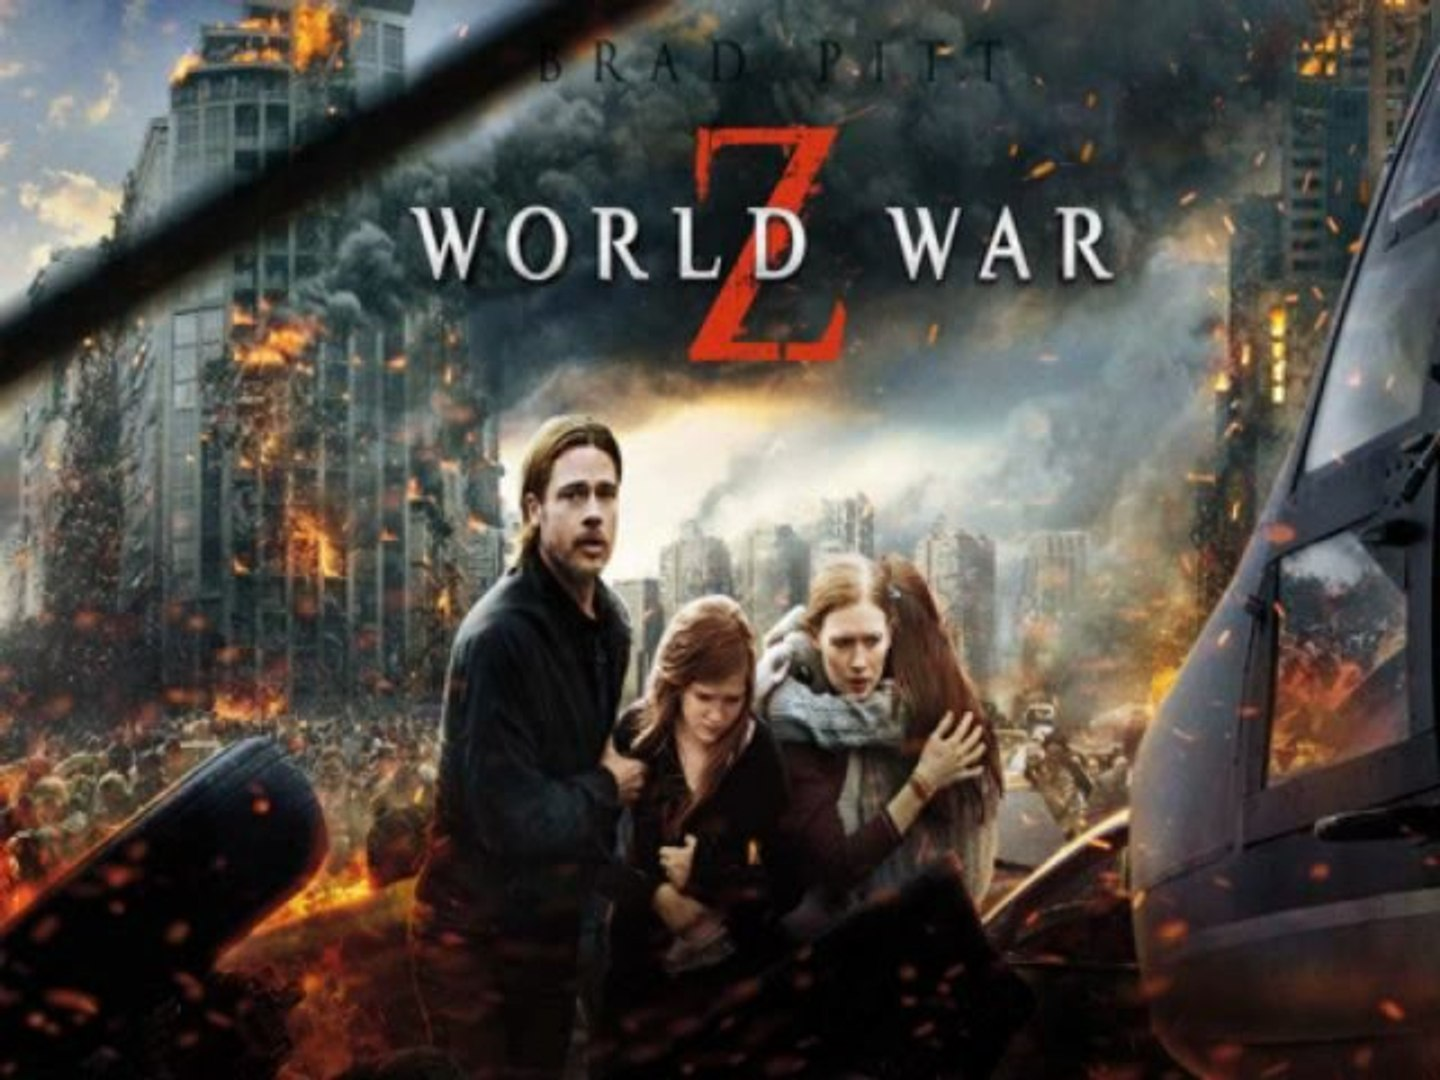 Complete Movie ONLINE World War Z  ++ FREE Movie++ with High Definition 720p [streaming movie to ipa